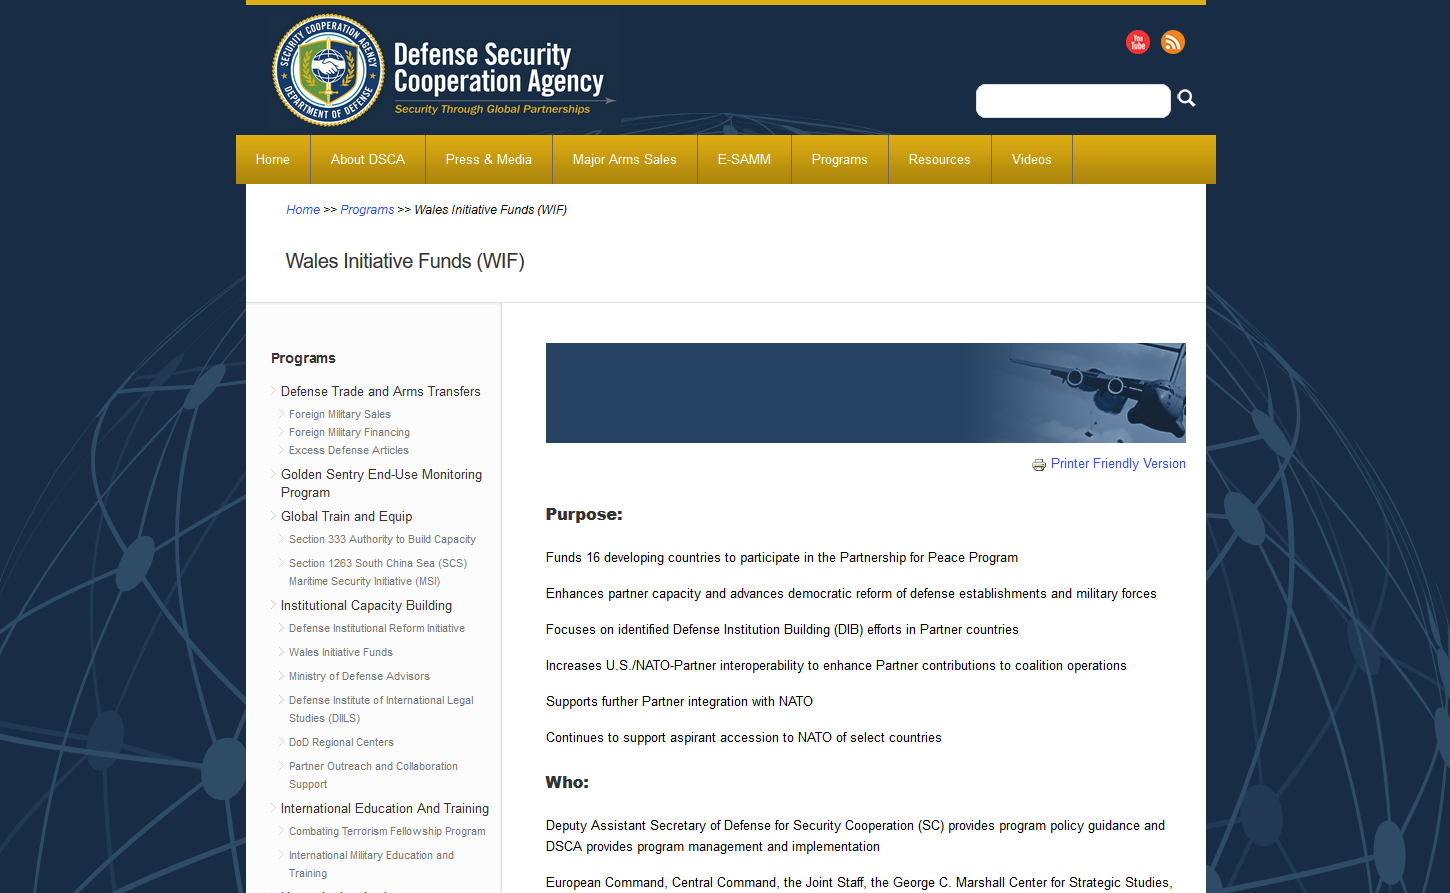 Defence Security Cooperation Agency